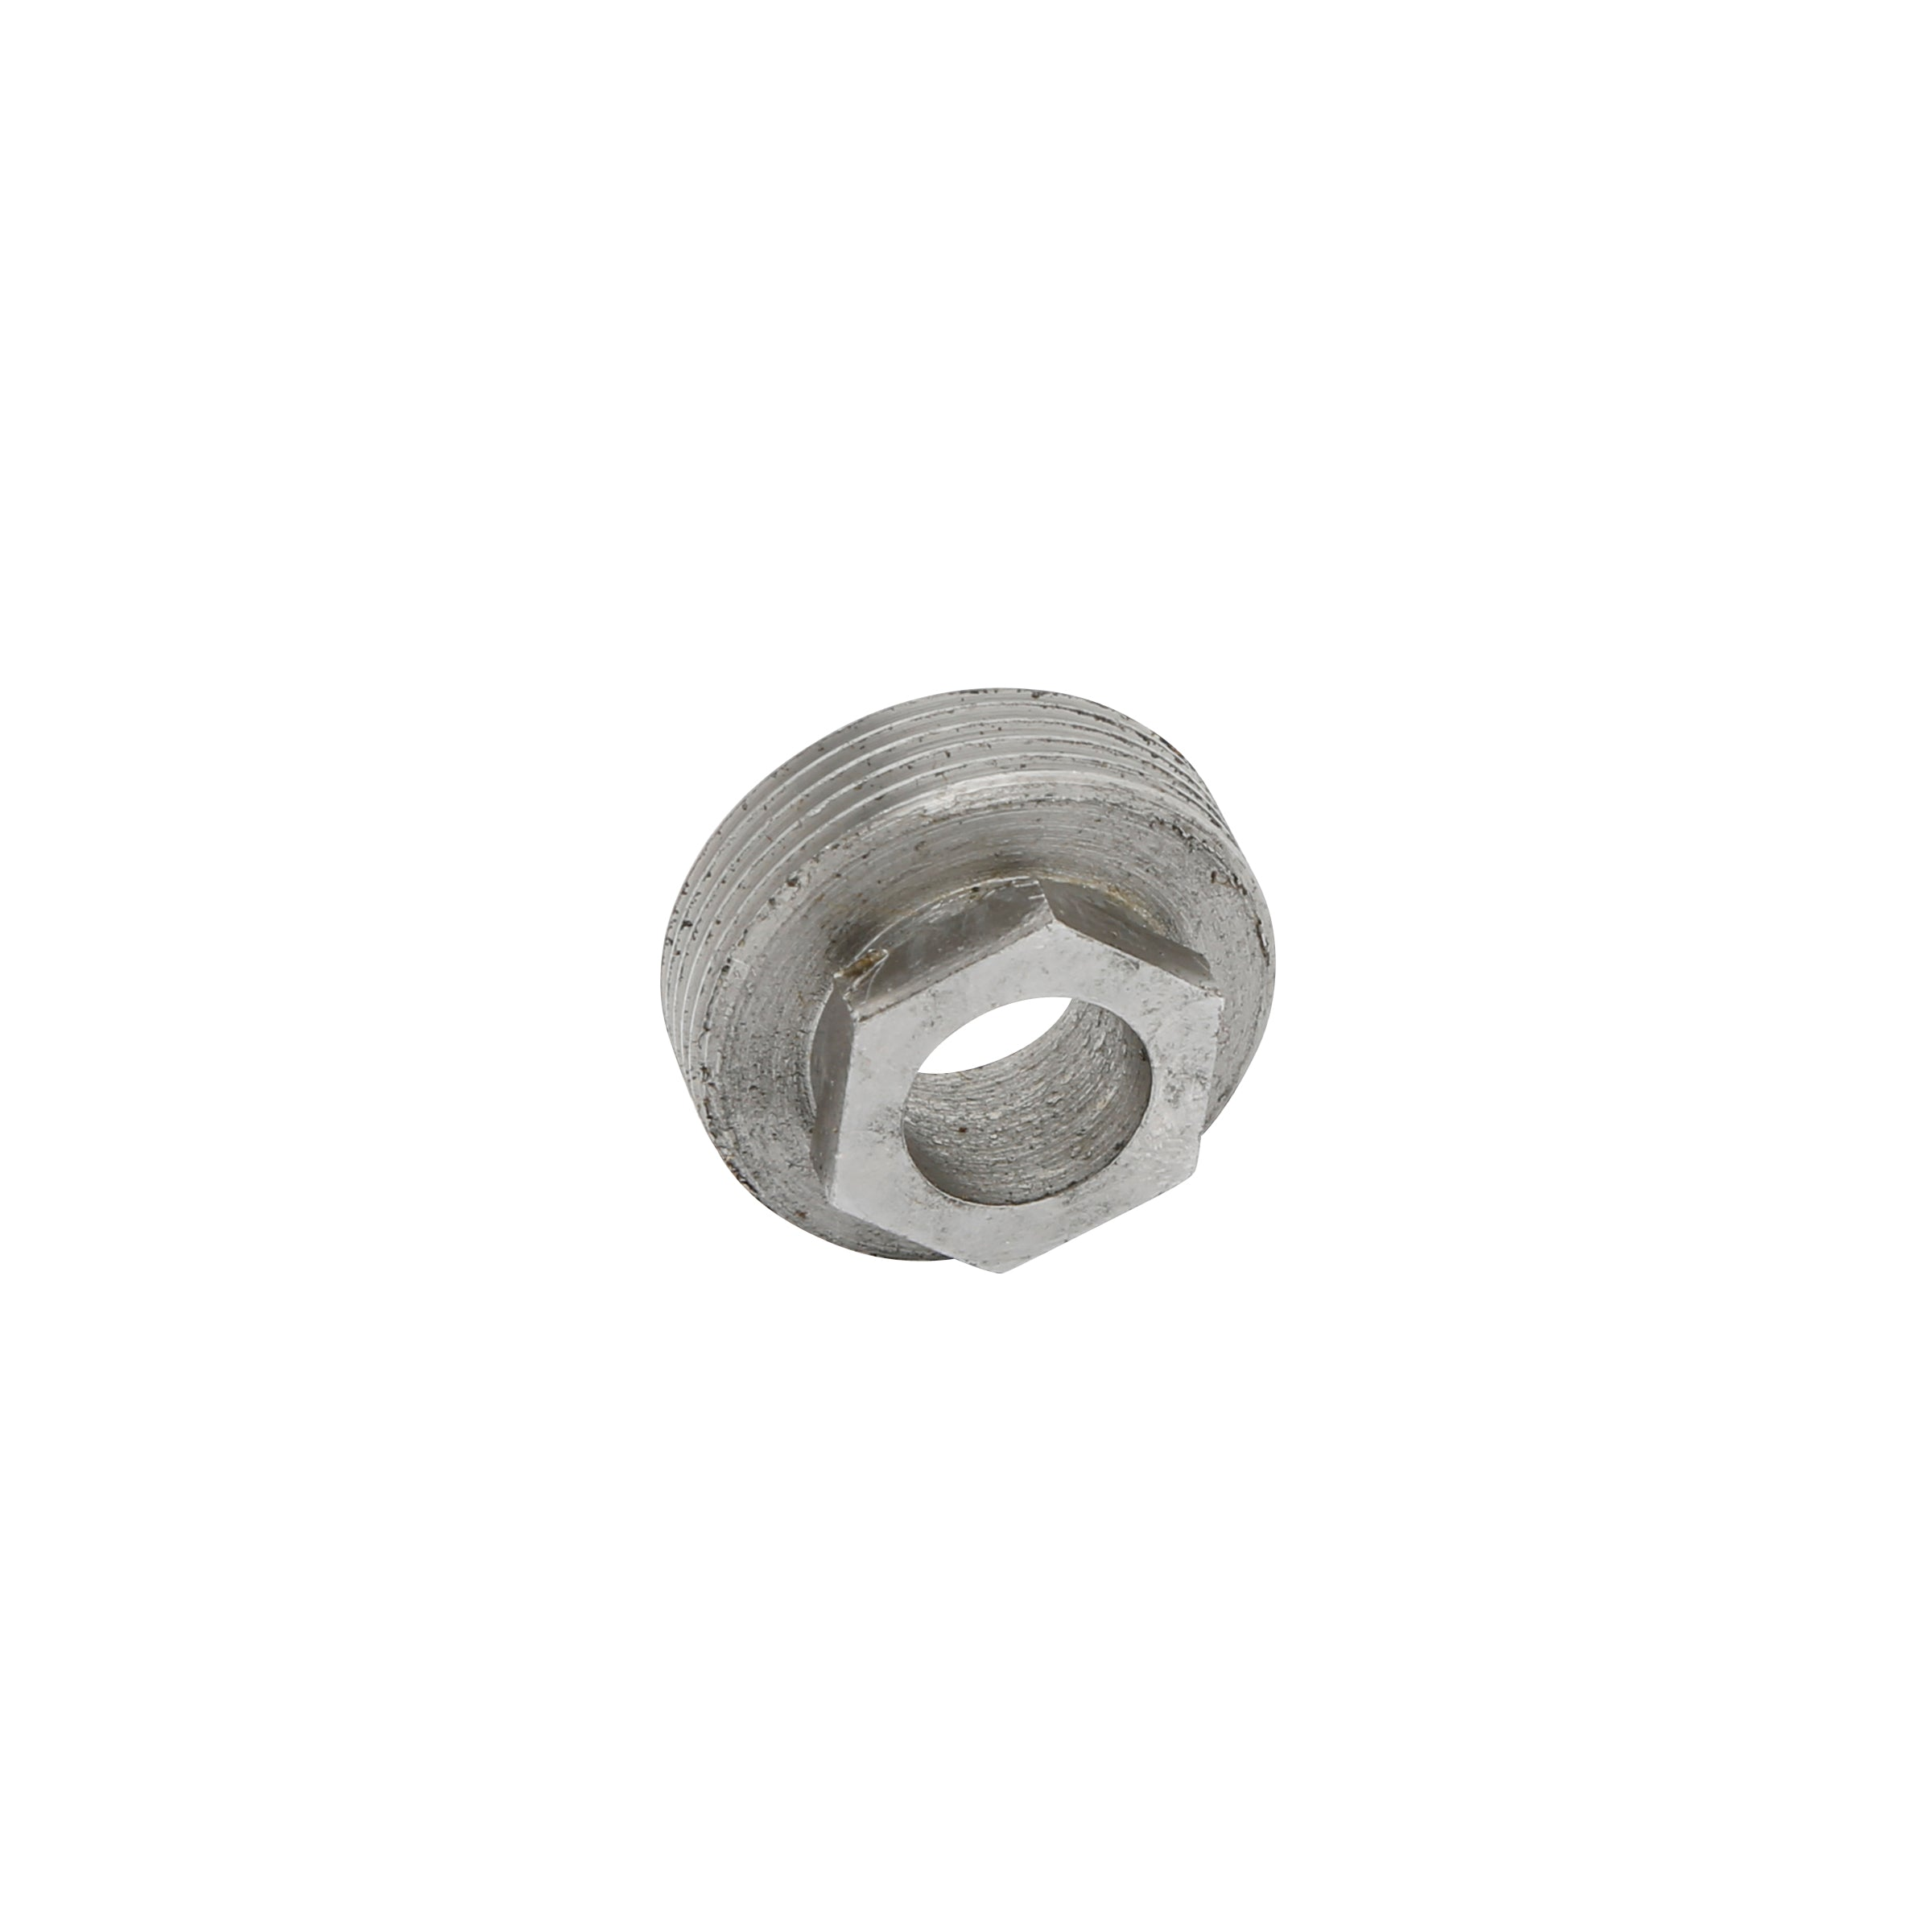 Oil Seal Retainer • 7 Tooth